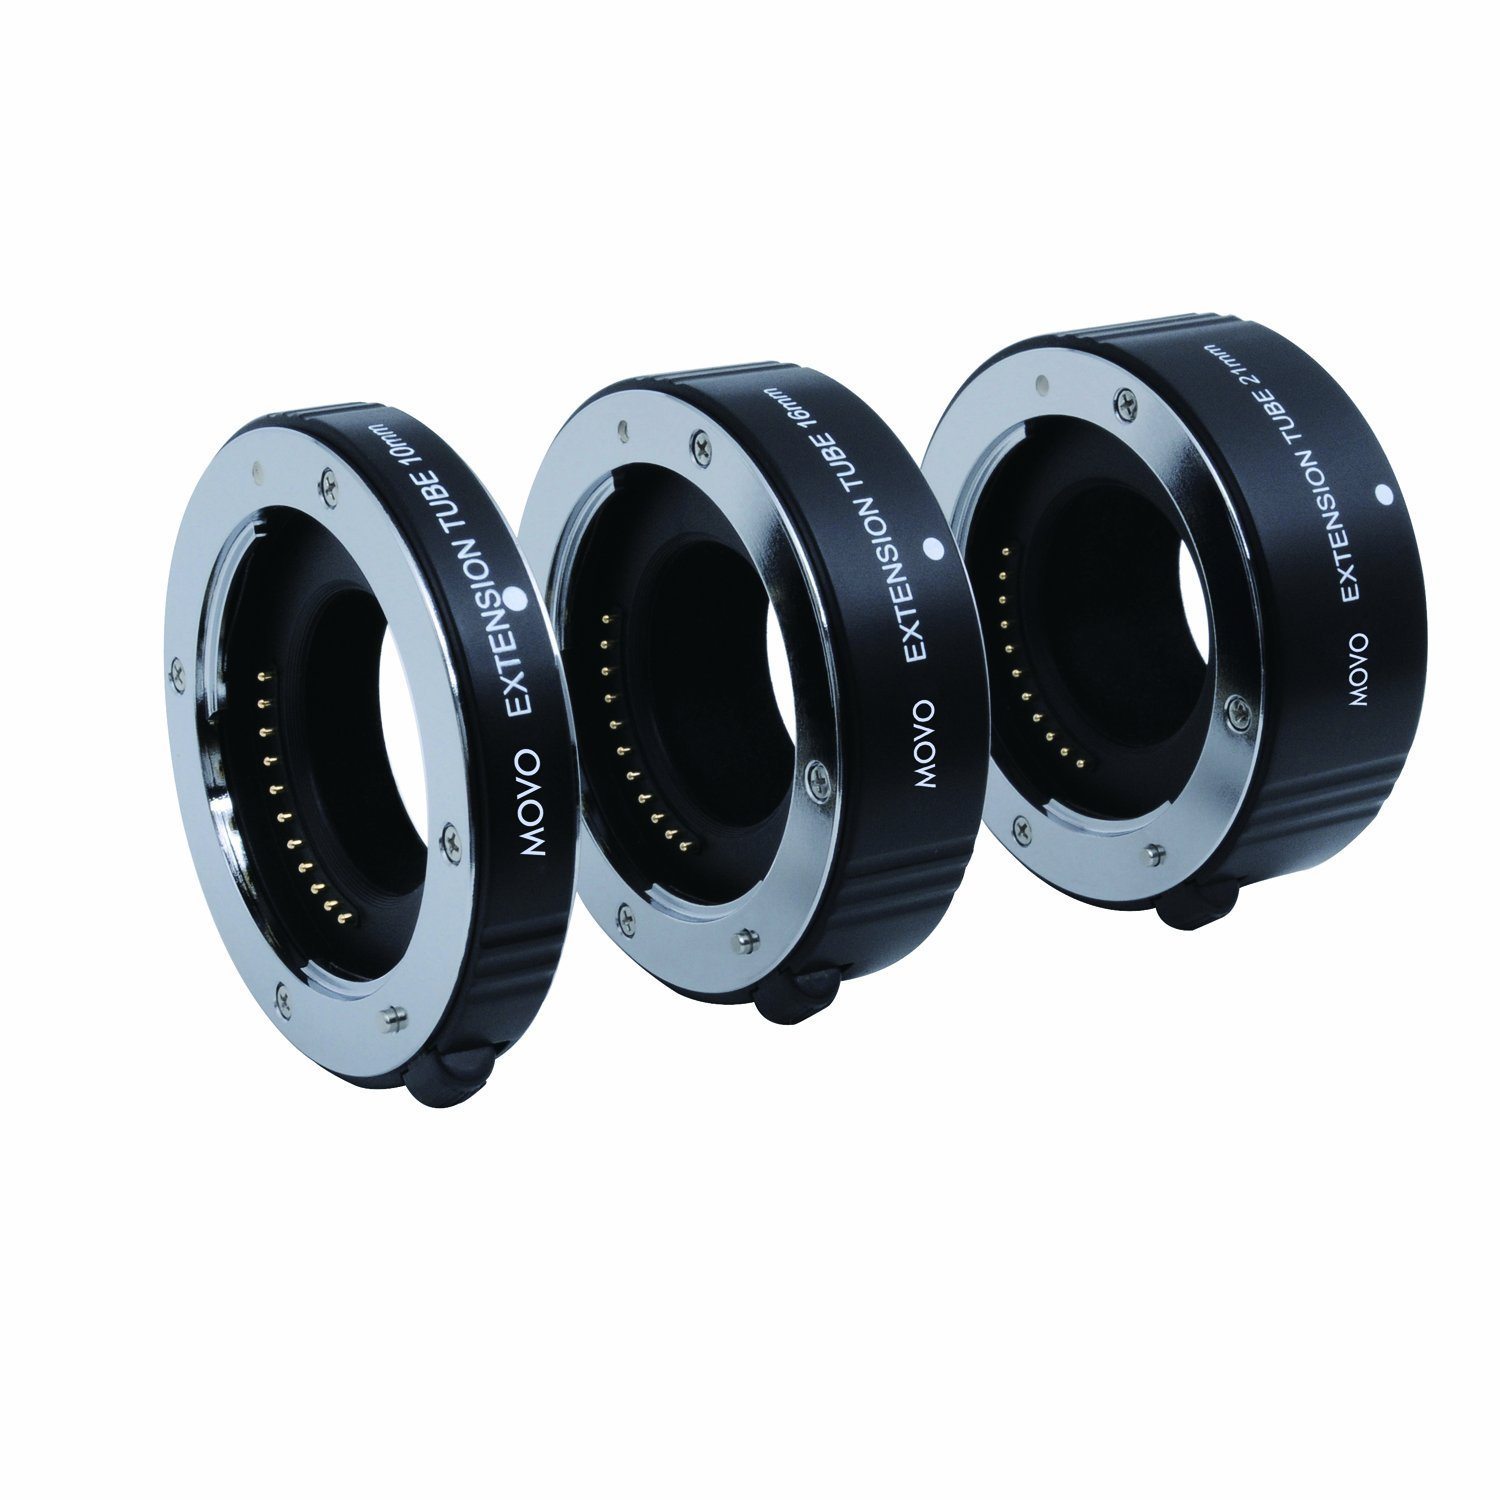 Movo Photo AF Macro Extension Tube Set for Fujifilm X-Mount Mirrorless Cameras with 10mm, 16mm & 21mm Tubes by Movo